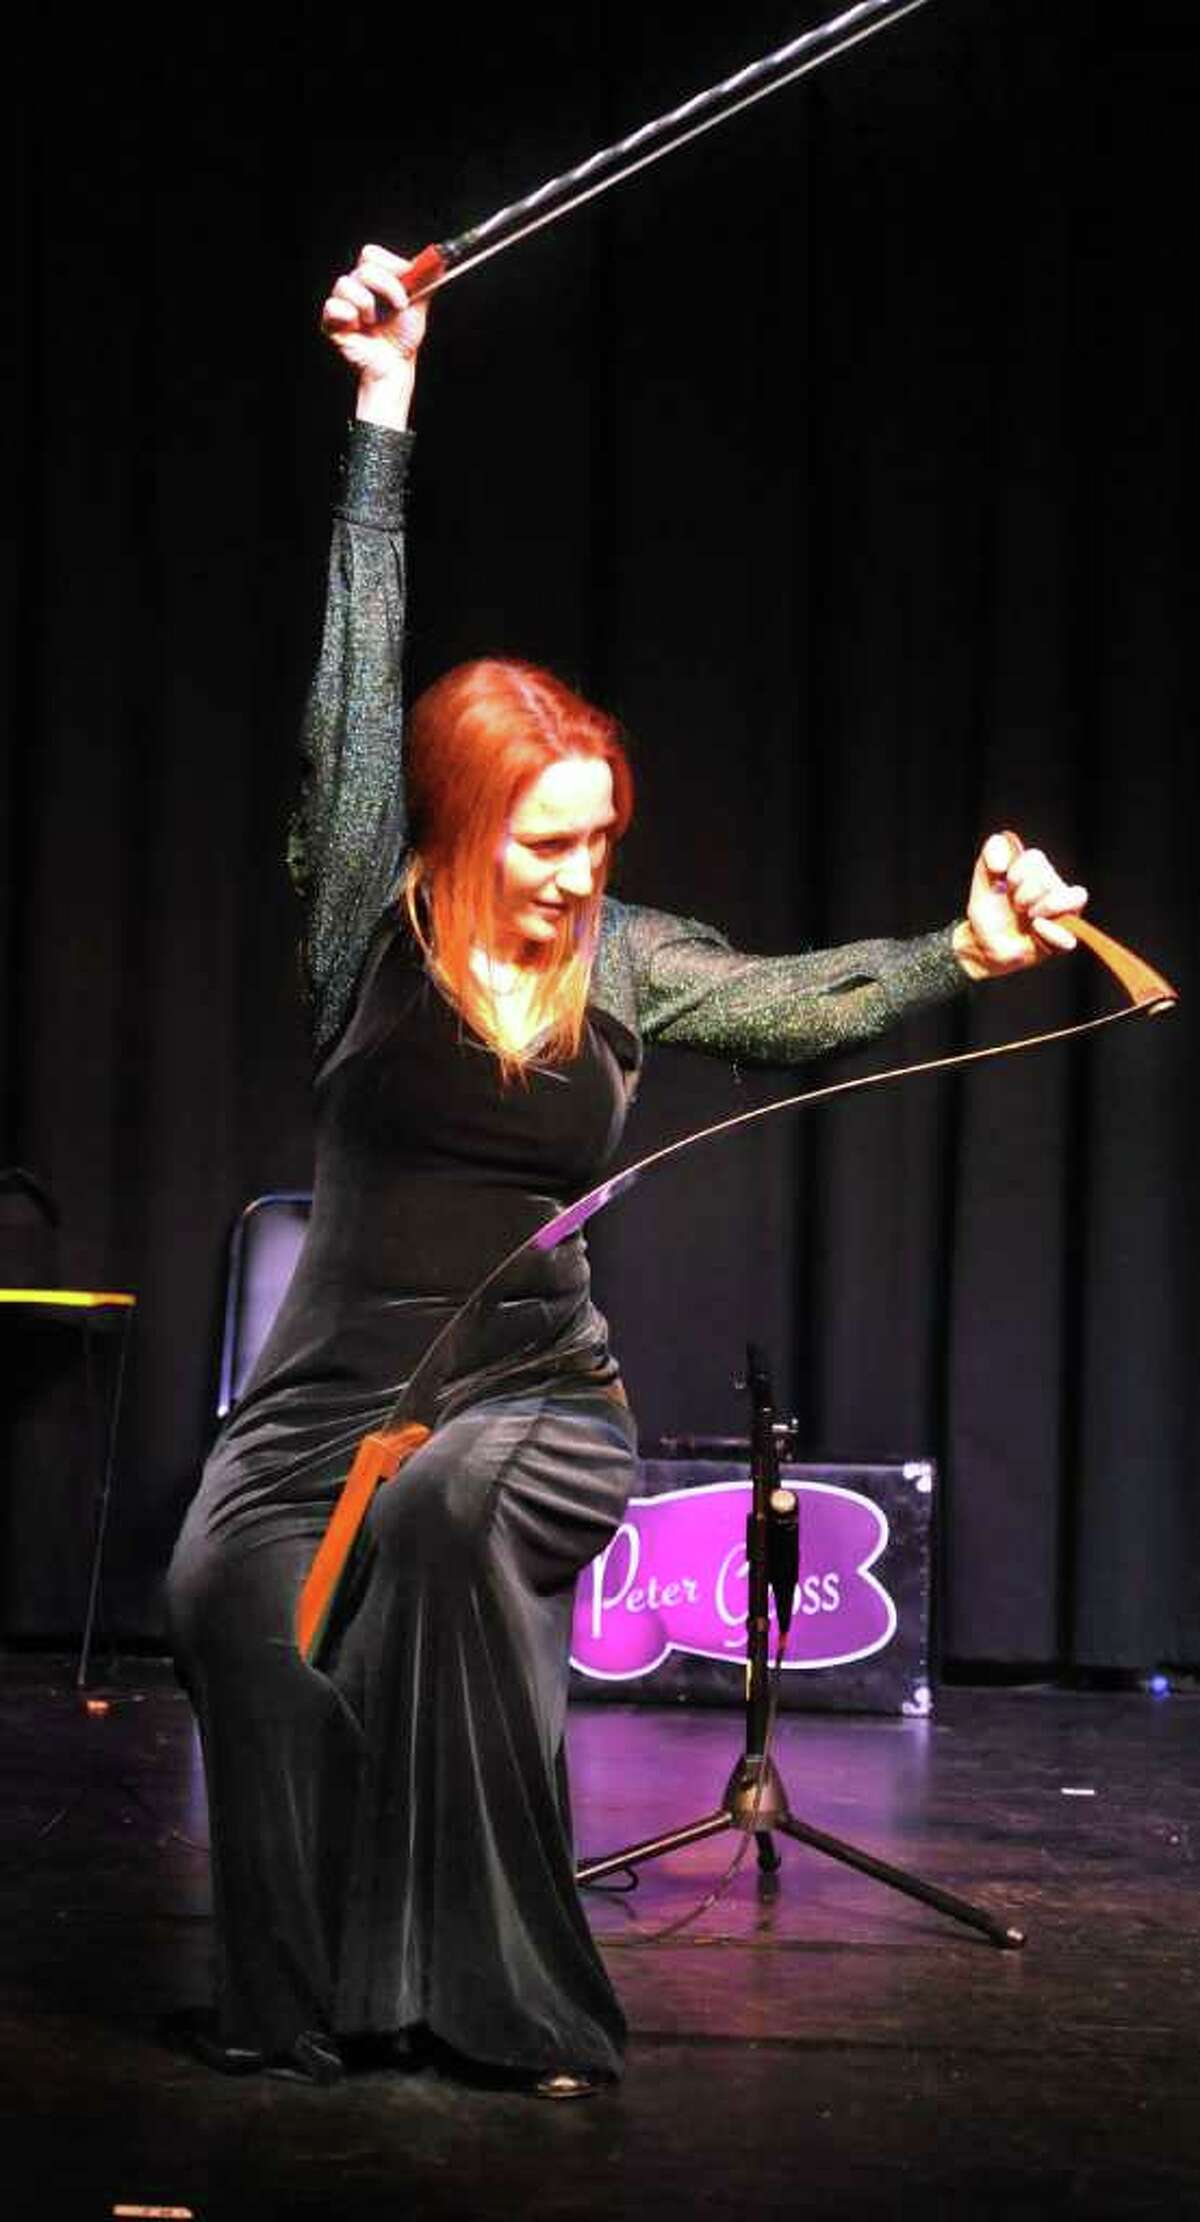 """Natalia Paruz, """"The Saw Lady,'' plays her musical saw during First Night Danbury, at the Palace Theatre Saturday, Dec. 31, 2011."""